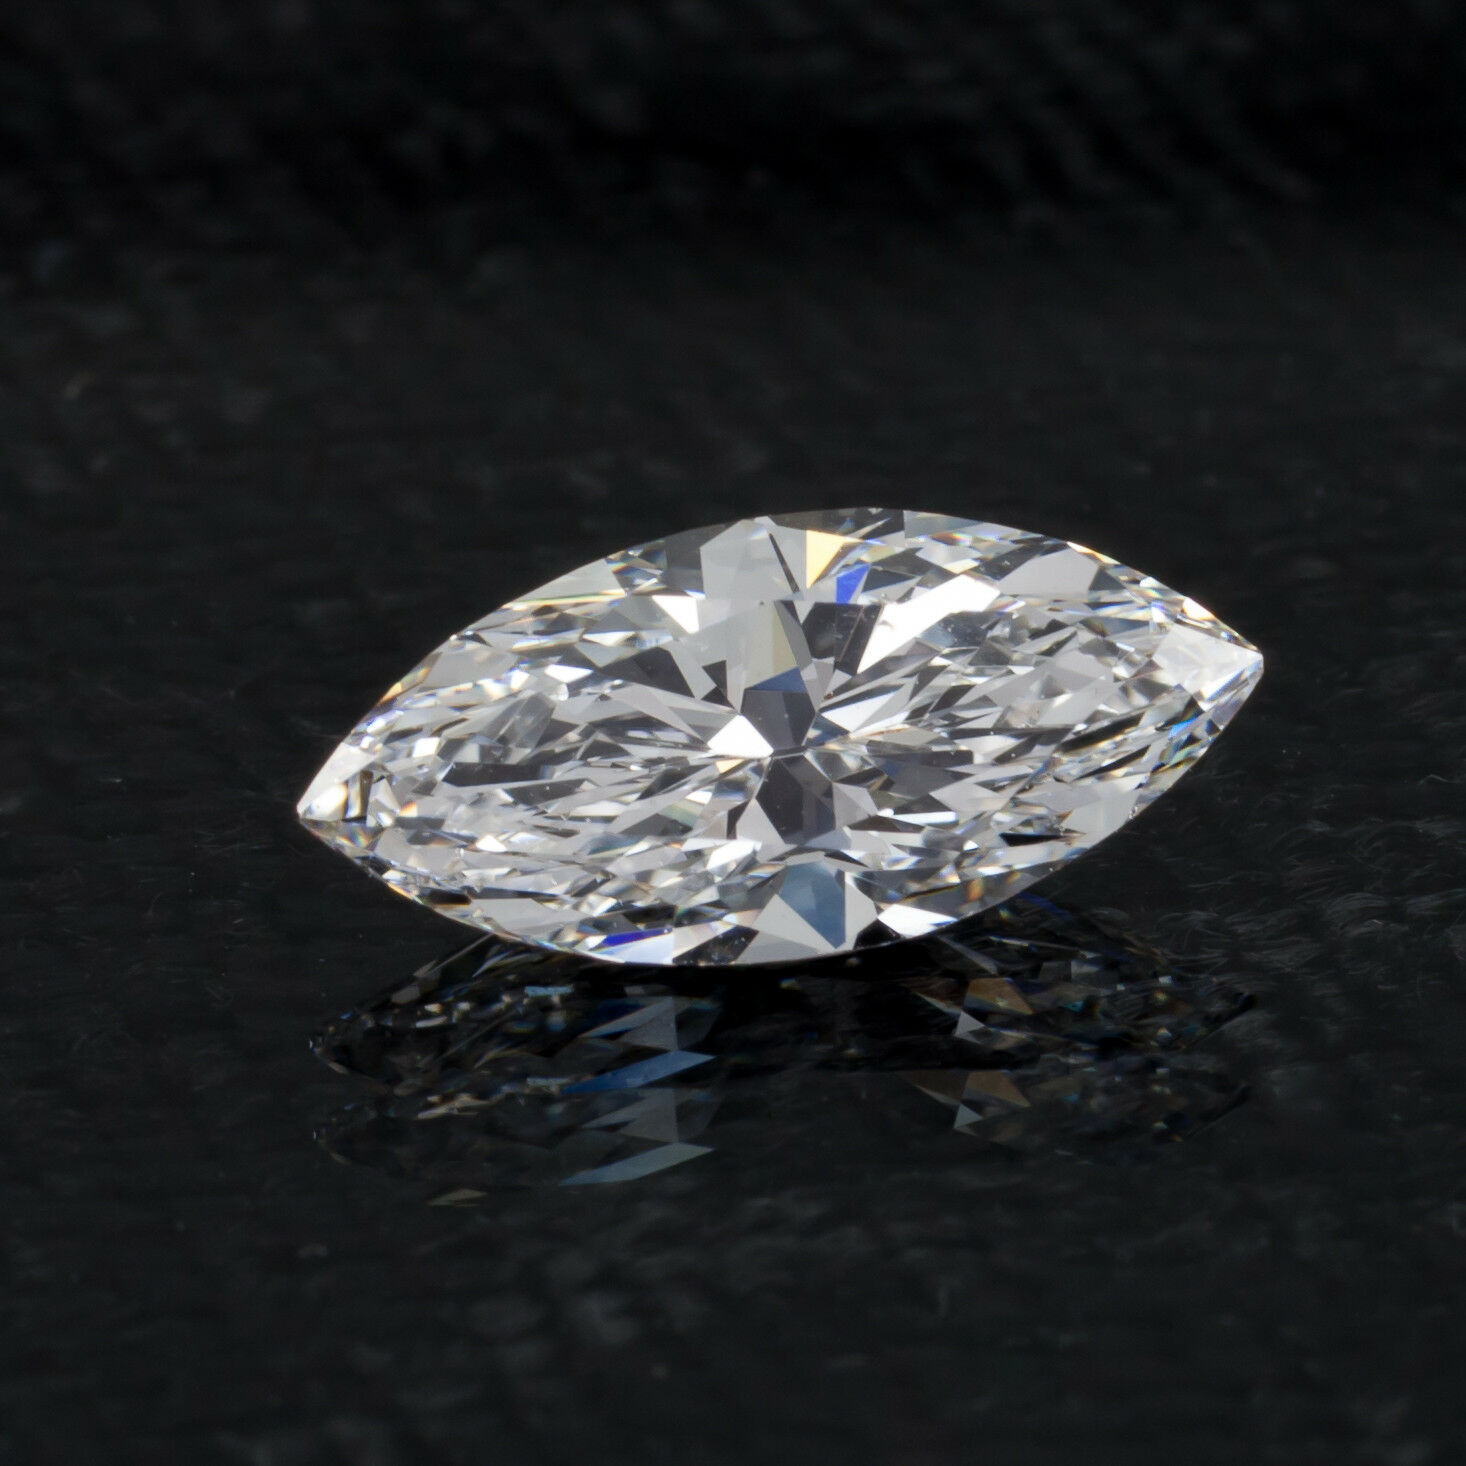 1.58 Carat Loose D / SI1 Marquise Brilliant Cut Diamond GIA Certified